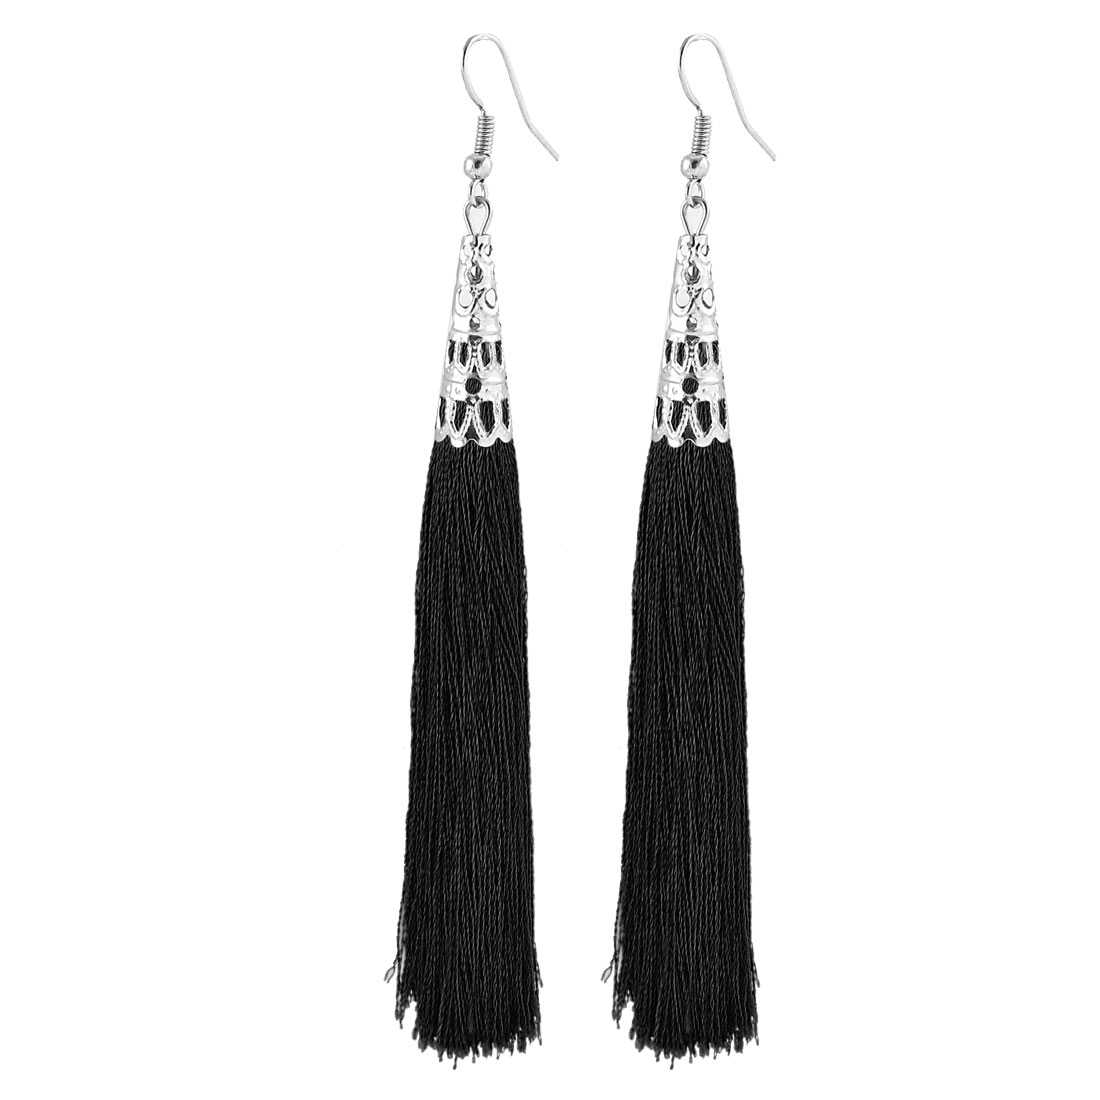 Hollow Bead Cap Cone Adornment Fish Hook Dangle Tassel Earrings Pair Black